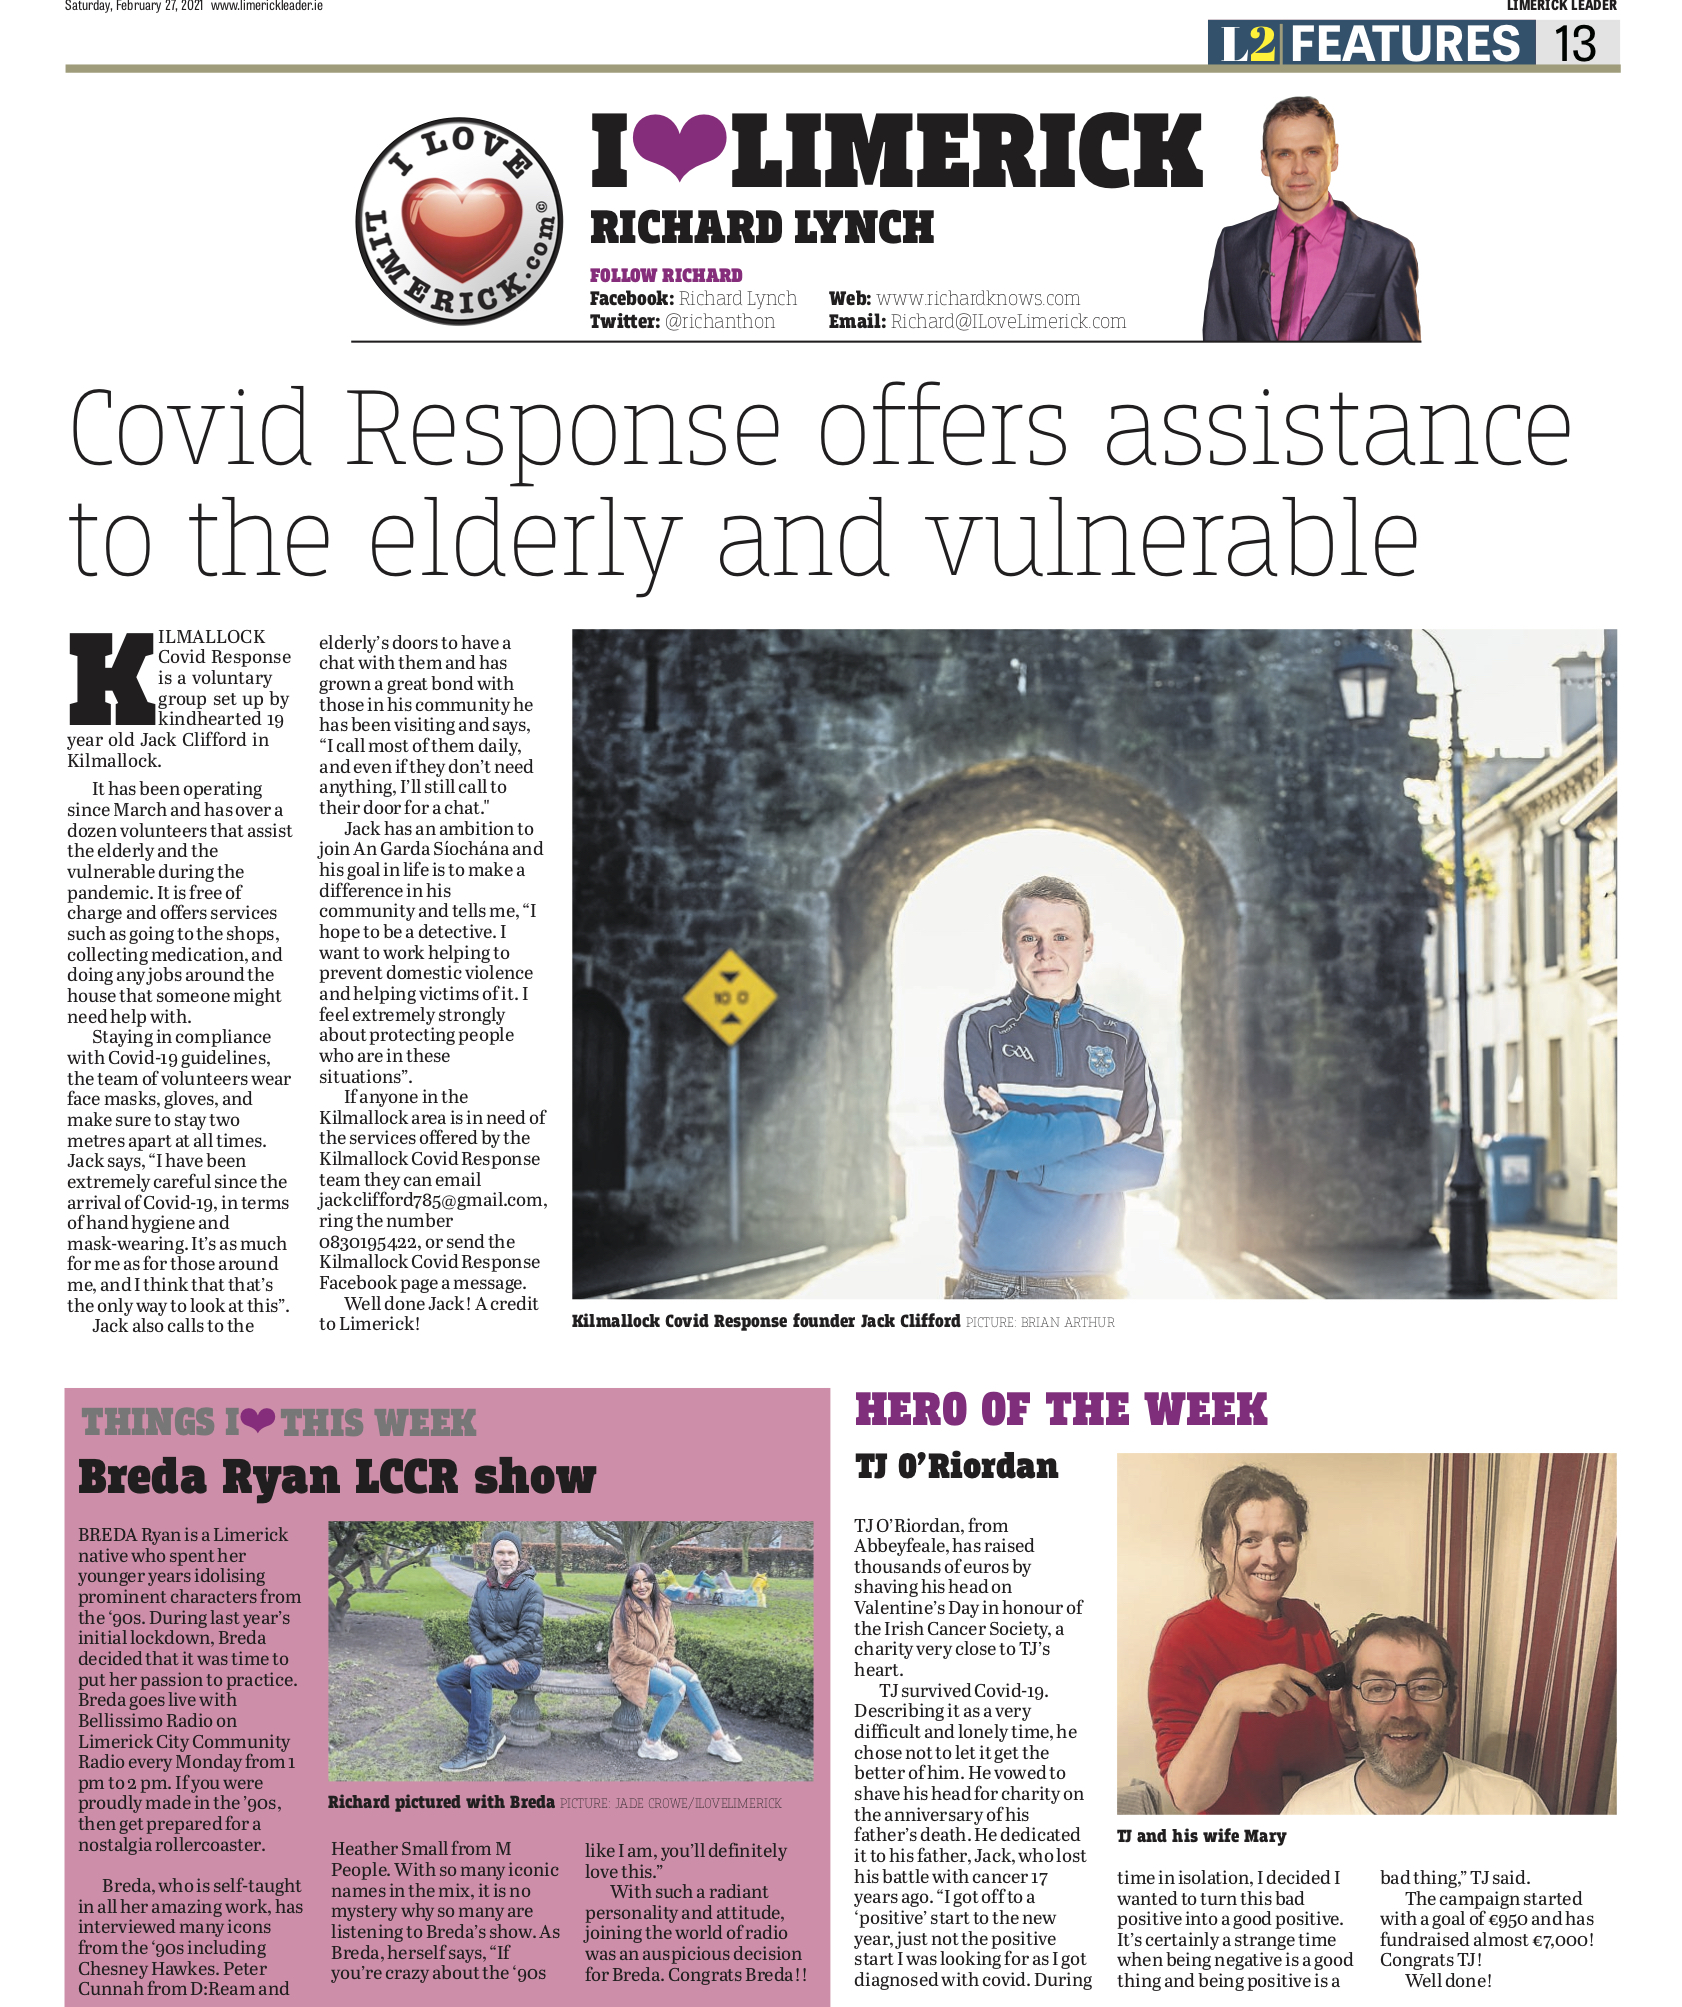 The Leader Column February 27 2021 - Covid Response offers assistance to the elderly and vulnerable